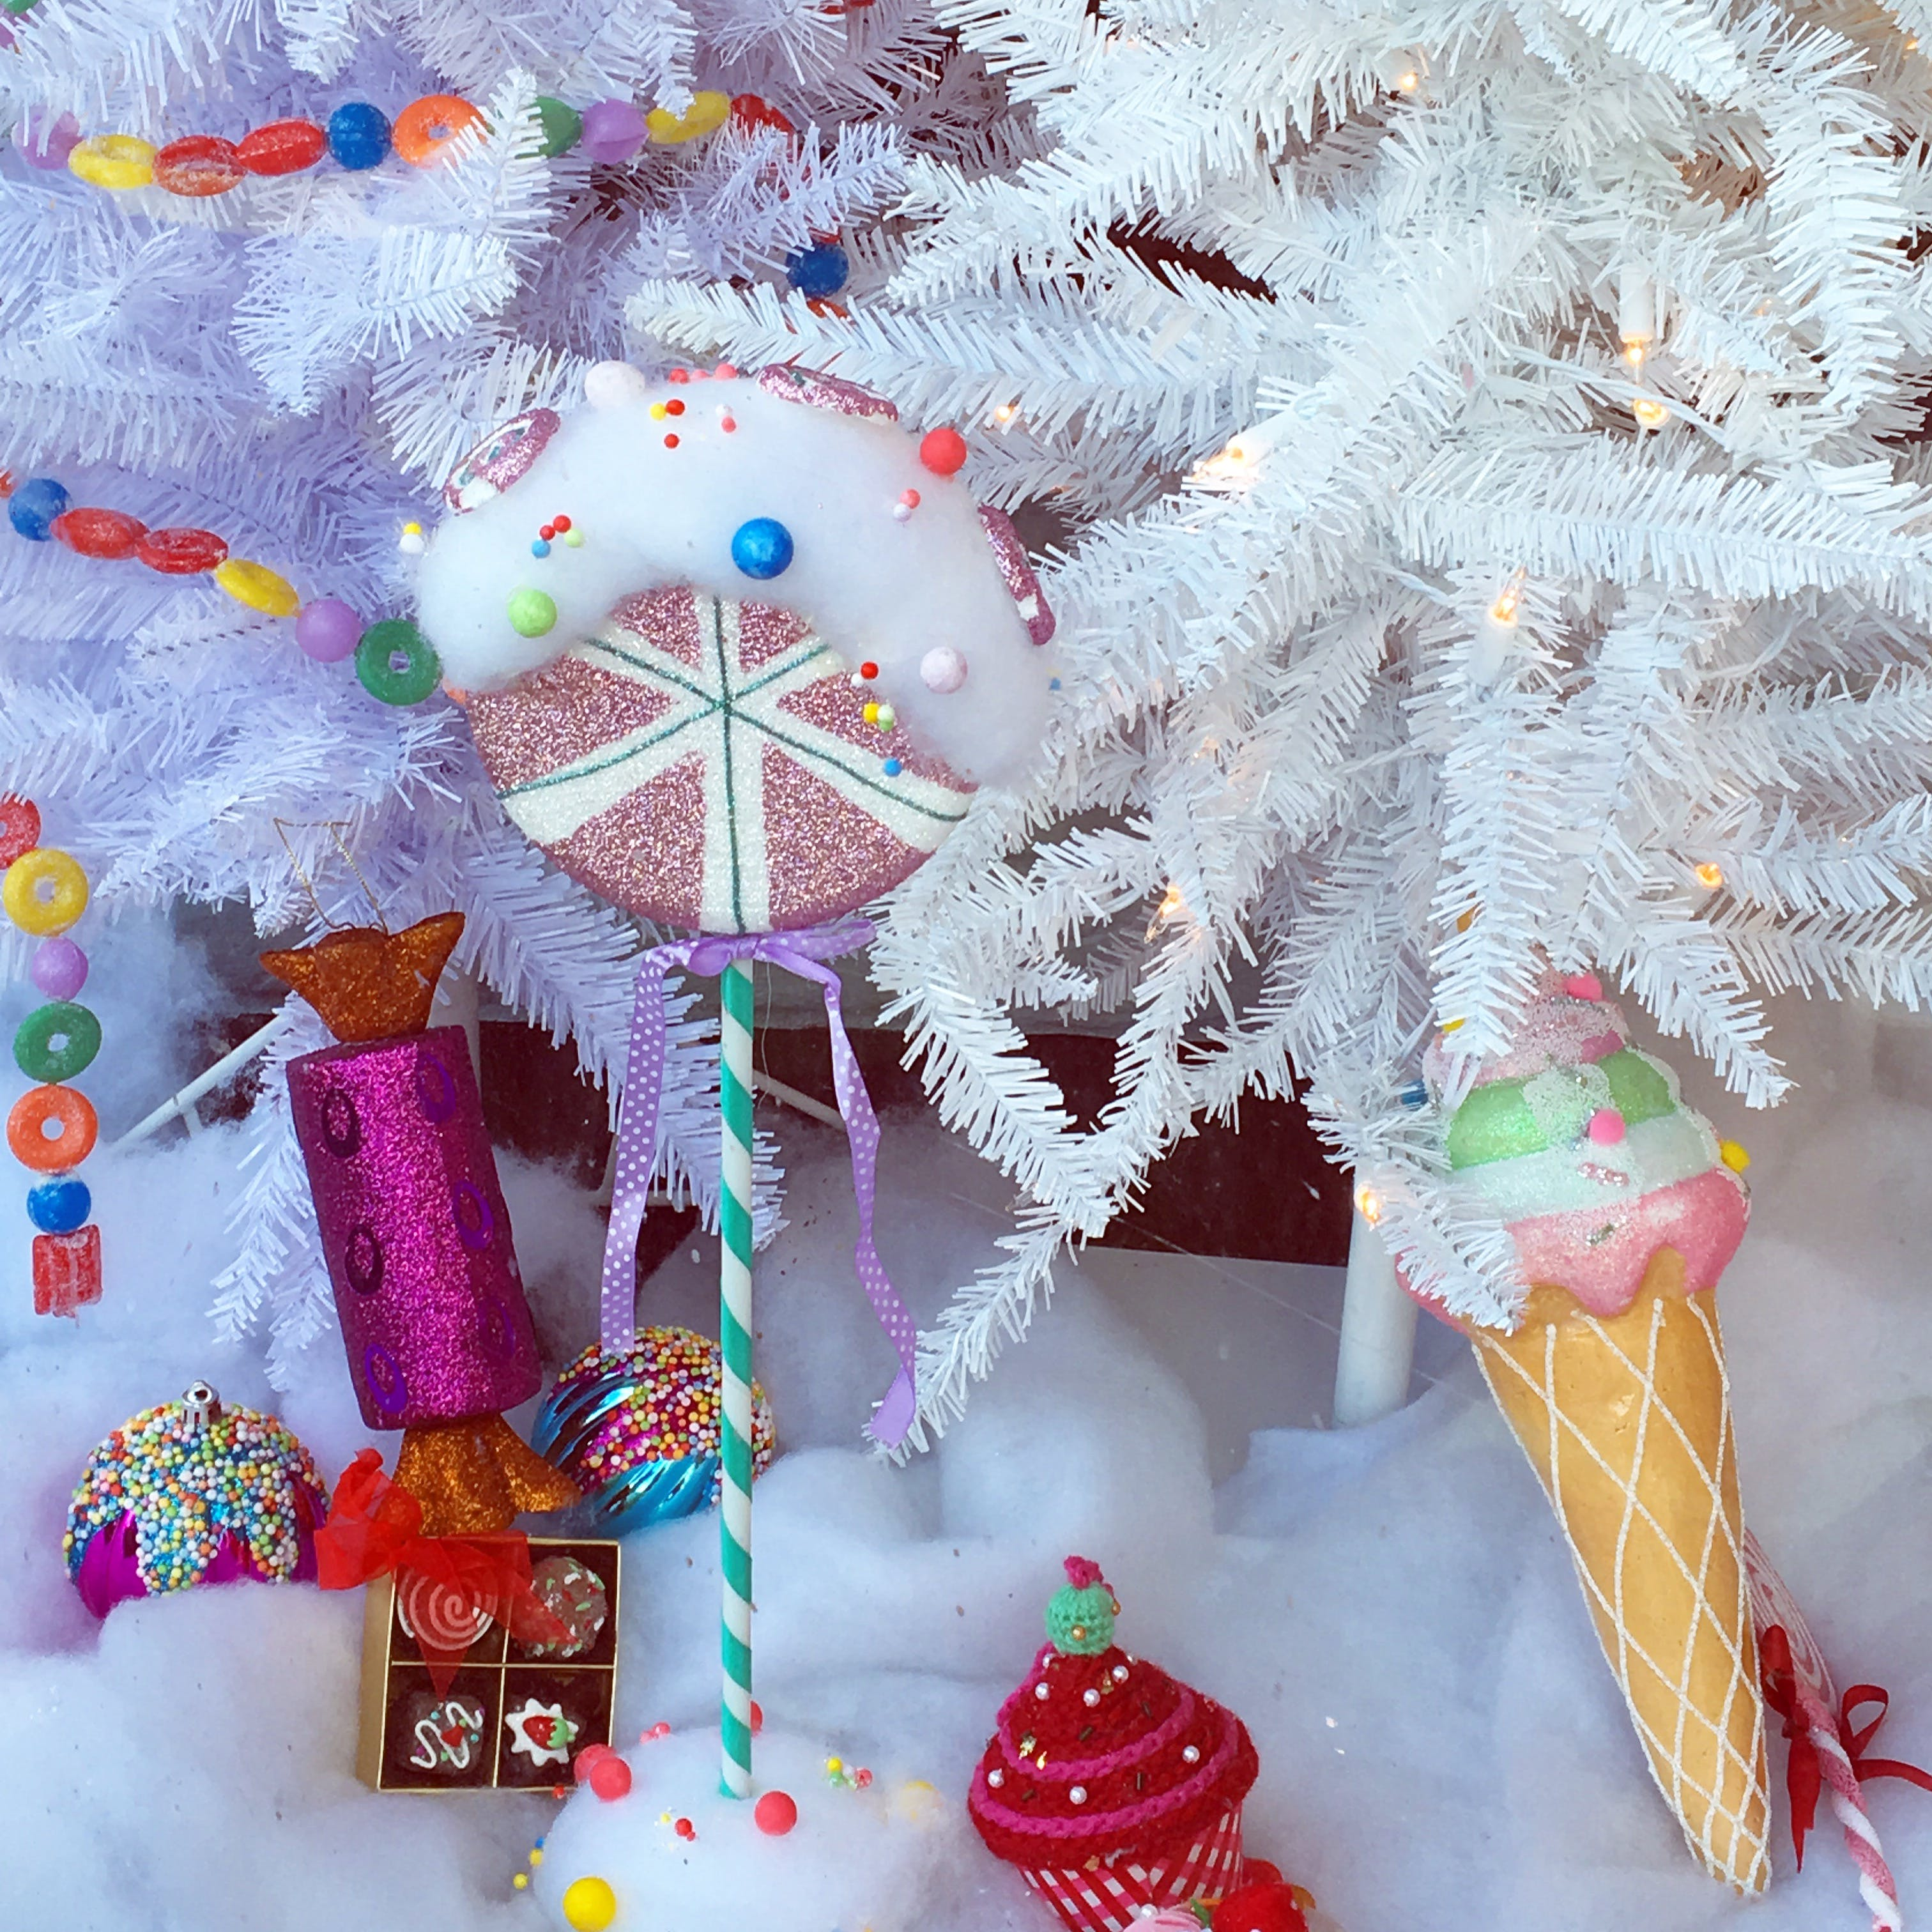 Free stock photo of candy, christmas, christmas tree, decorations